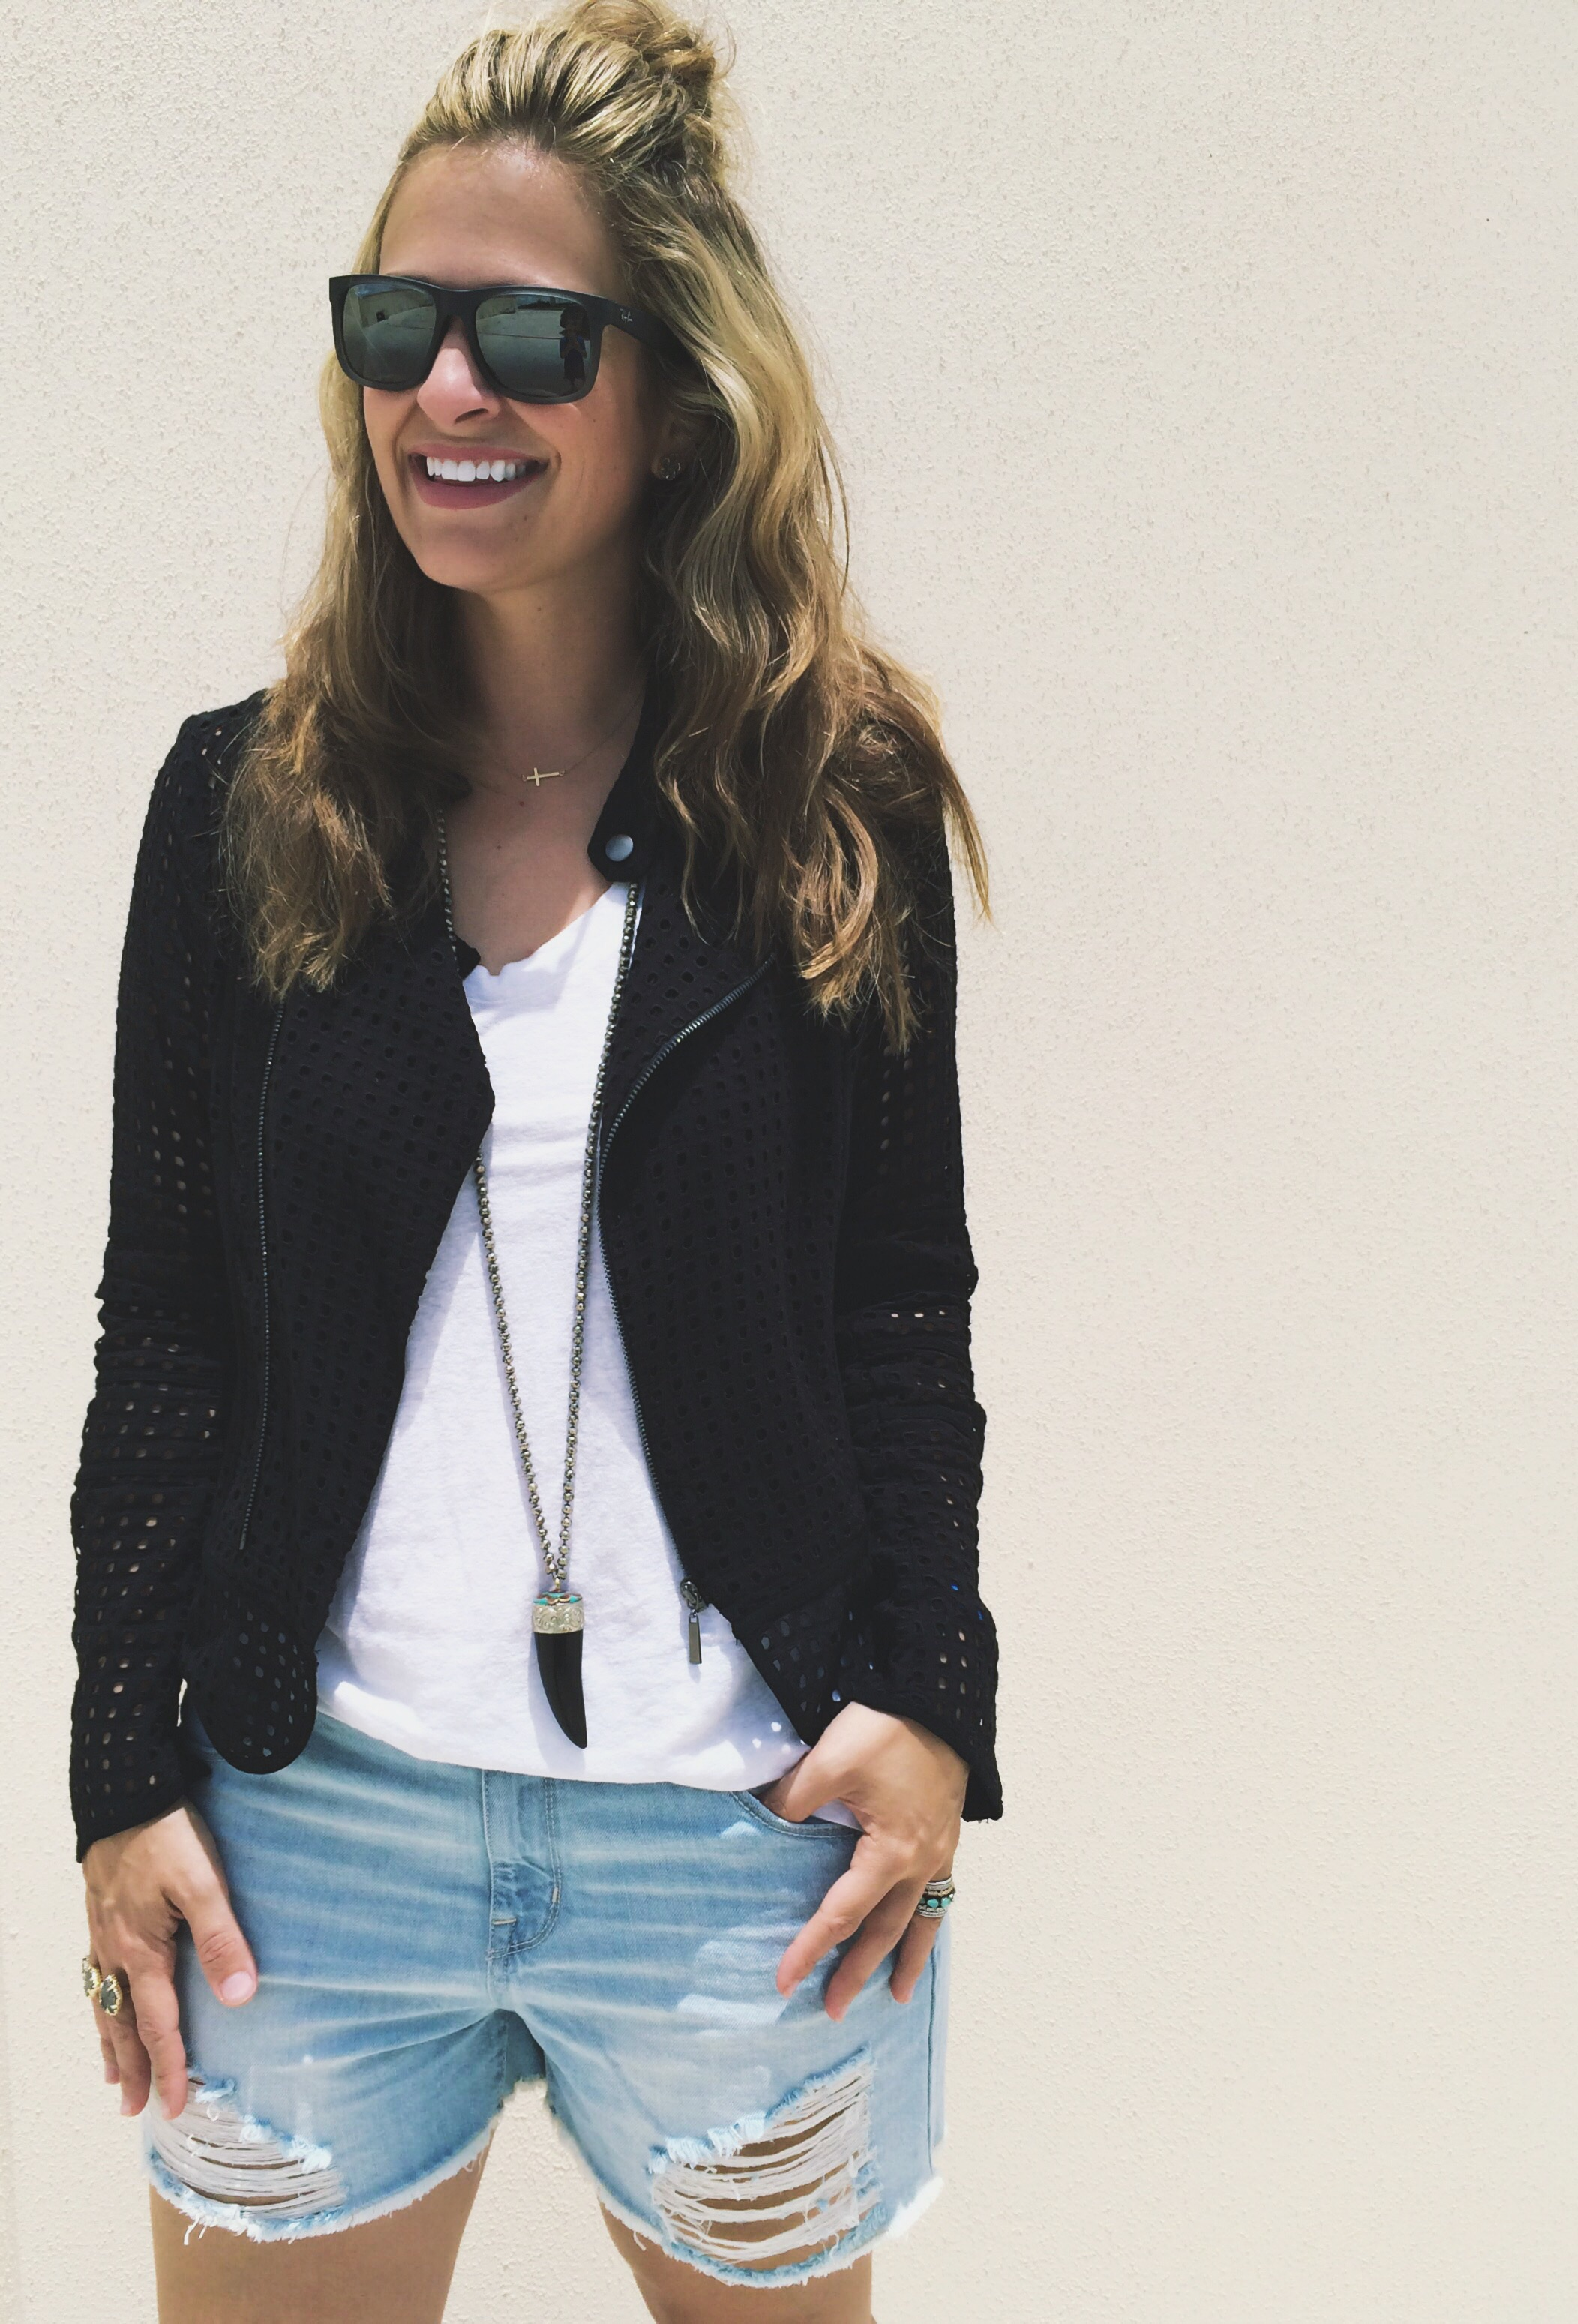 Sunglasses:  Ray-Ban  Shorts:  Target  Jacket:  Nordstrom  Necklaces: Frasier Sterling (her designs  here  and similar here ) &  Stella & Dot